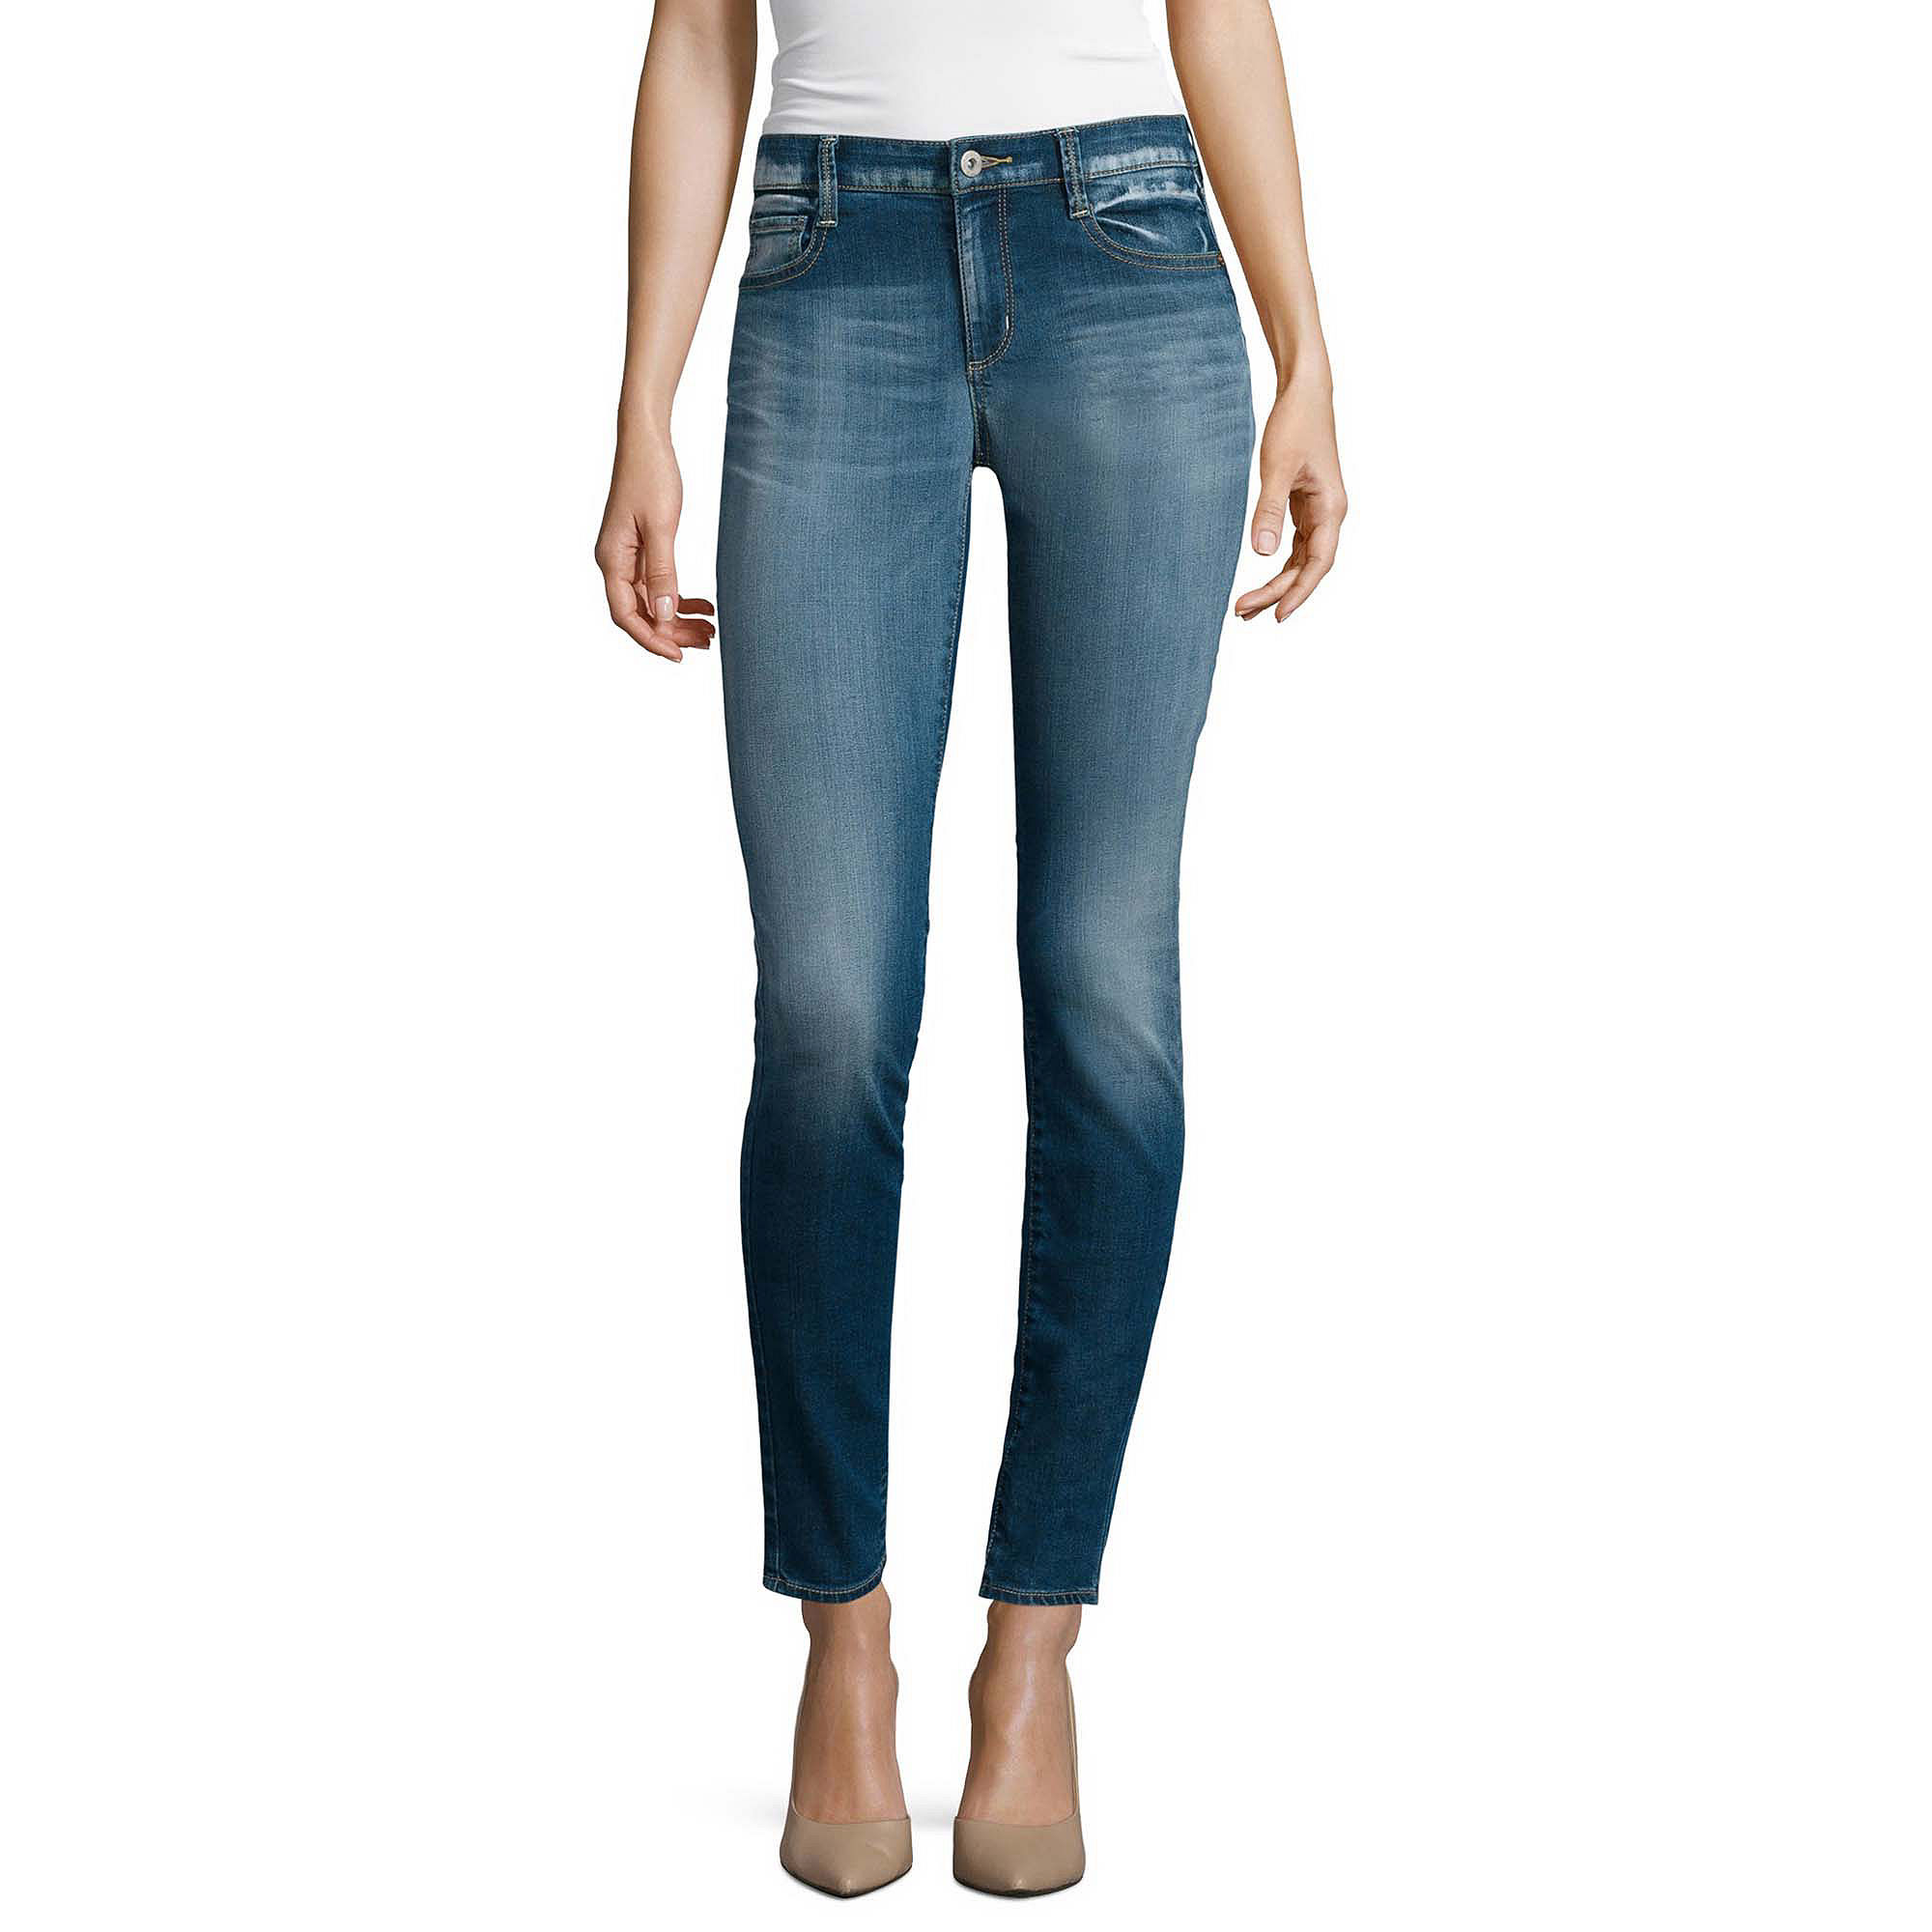 Arizona Curvy Skinny Jeans - Juniors